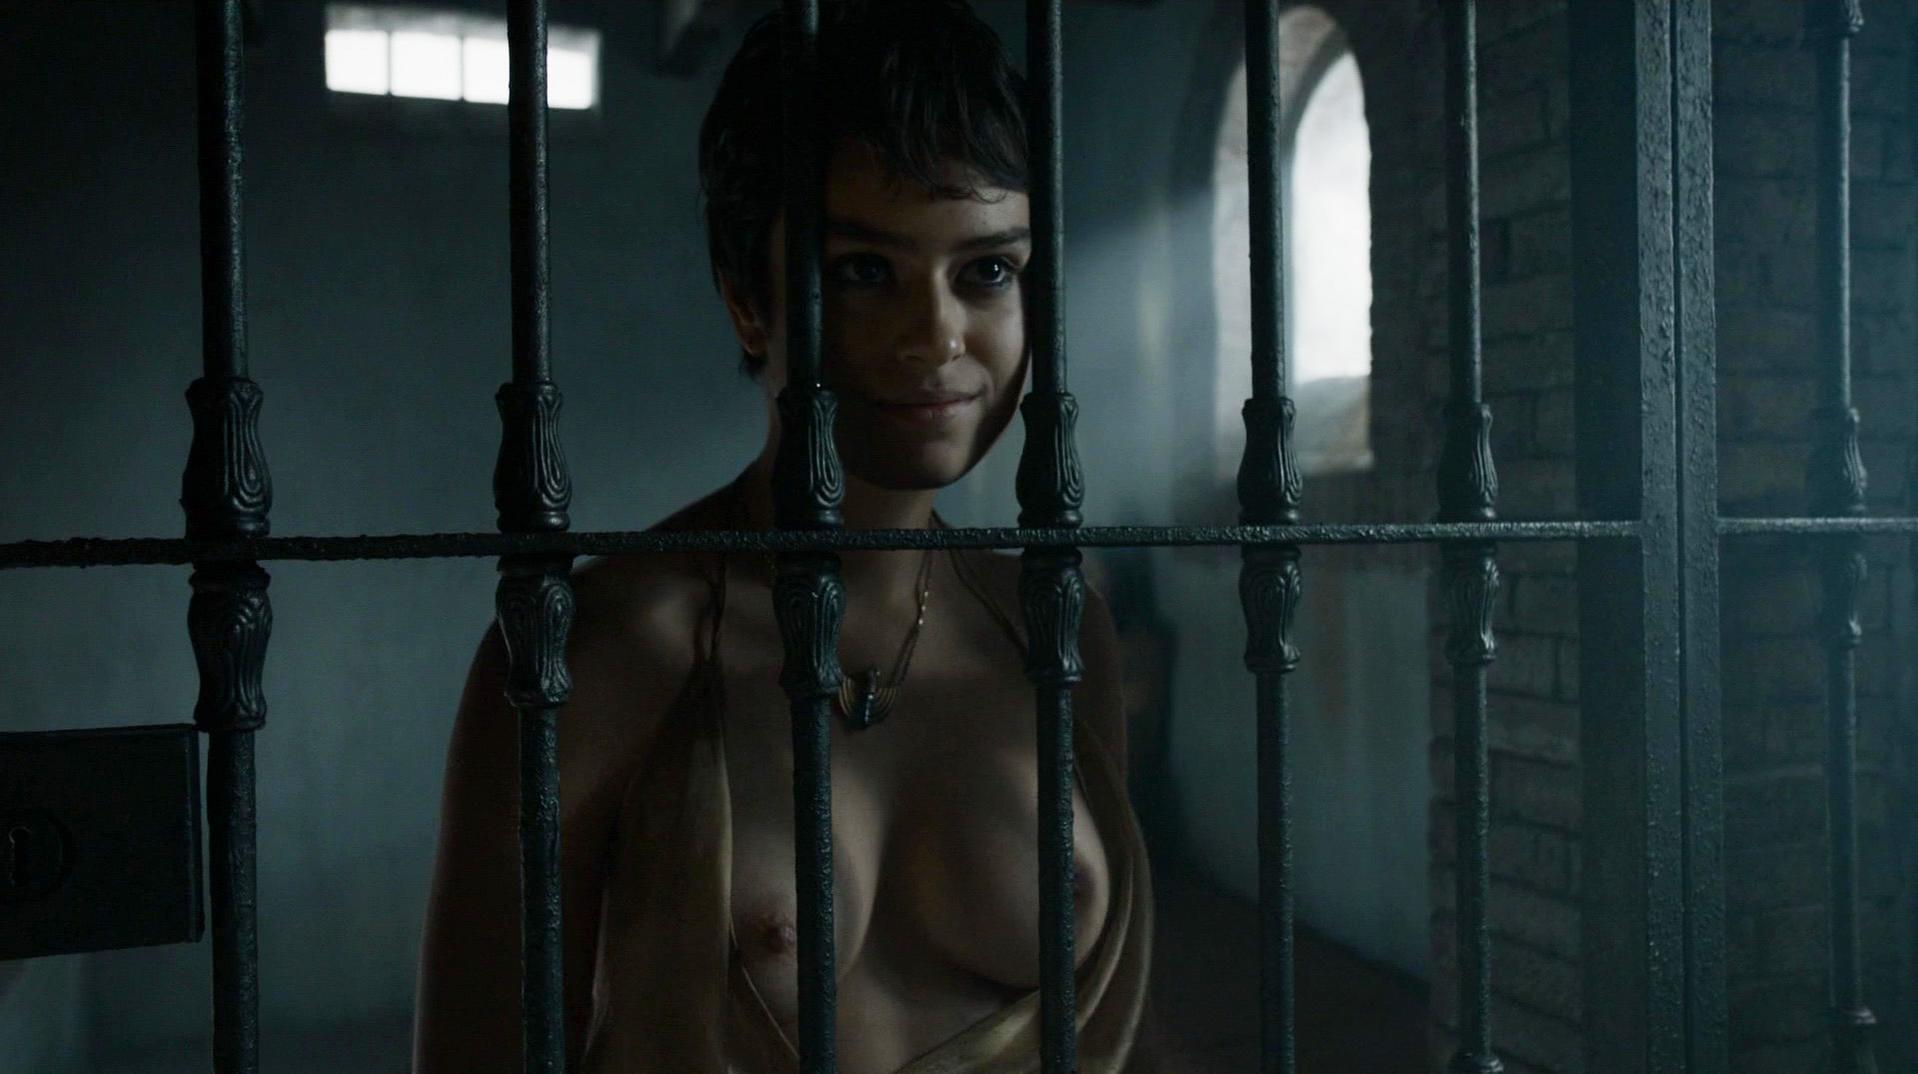 Rosabell Laurenti Sellers nude - Game of Thrones s05e07 (2015)